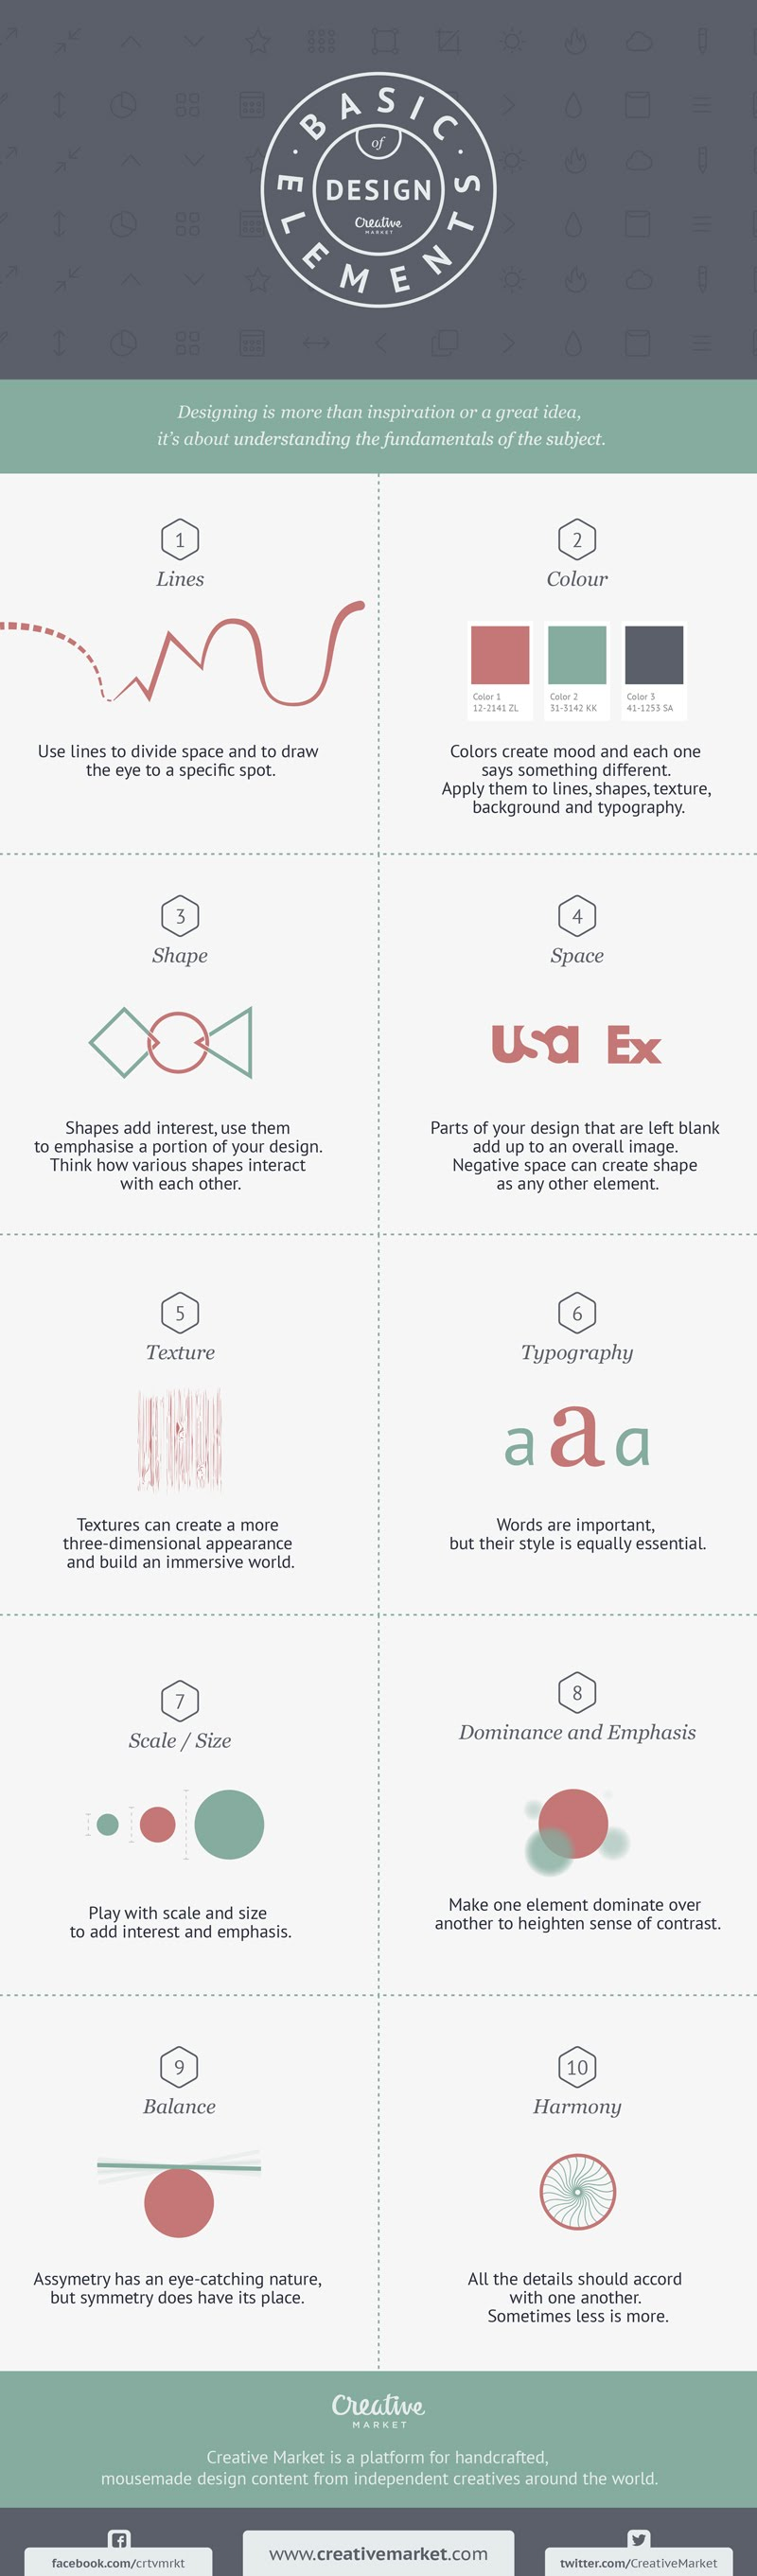 10 Basic Elements of Design - #infographic